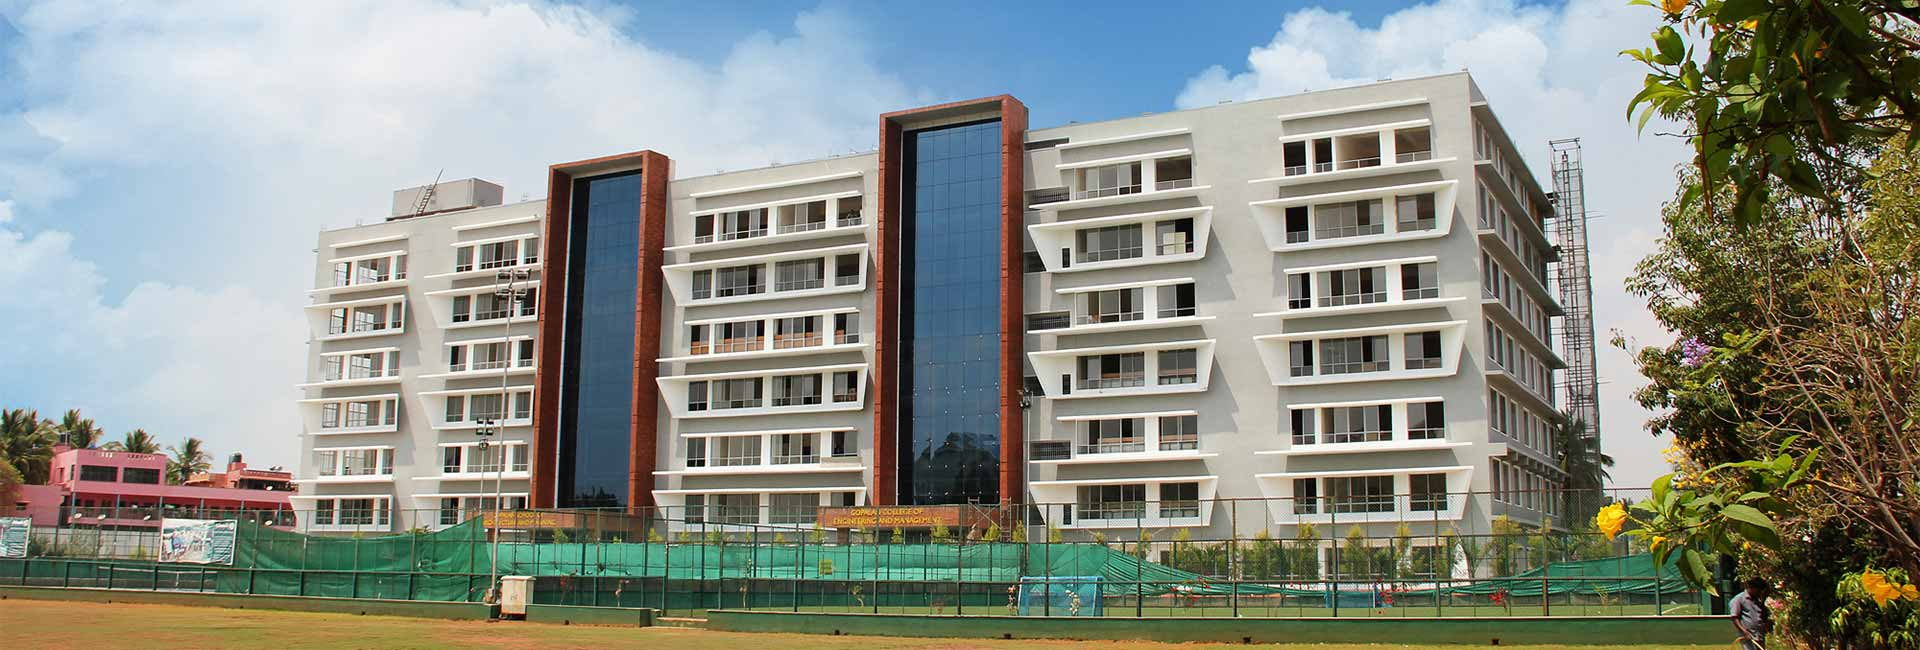 gopalan architecture colleges in bangalore architecture colleges